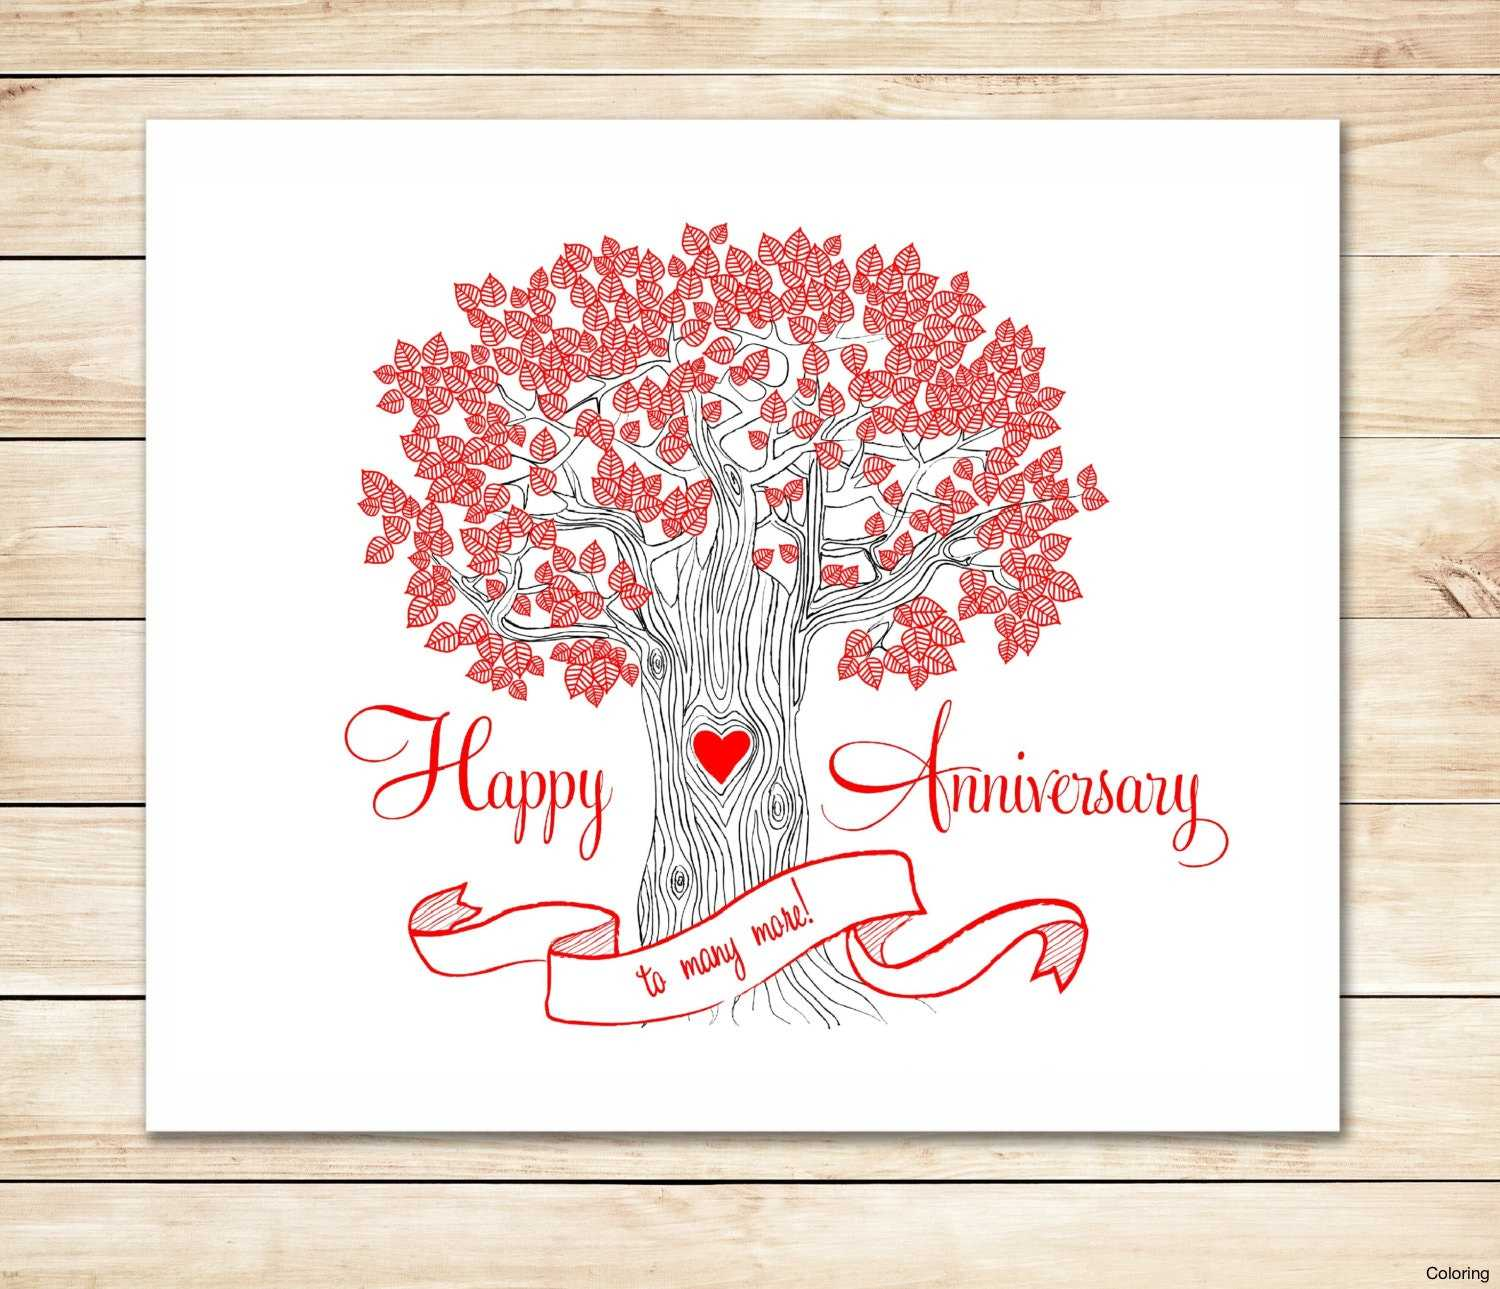 5+ Free Anniversary Card Template | Ml Datos Regarding Template For Anniversary Card